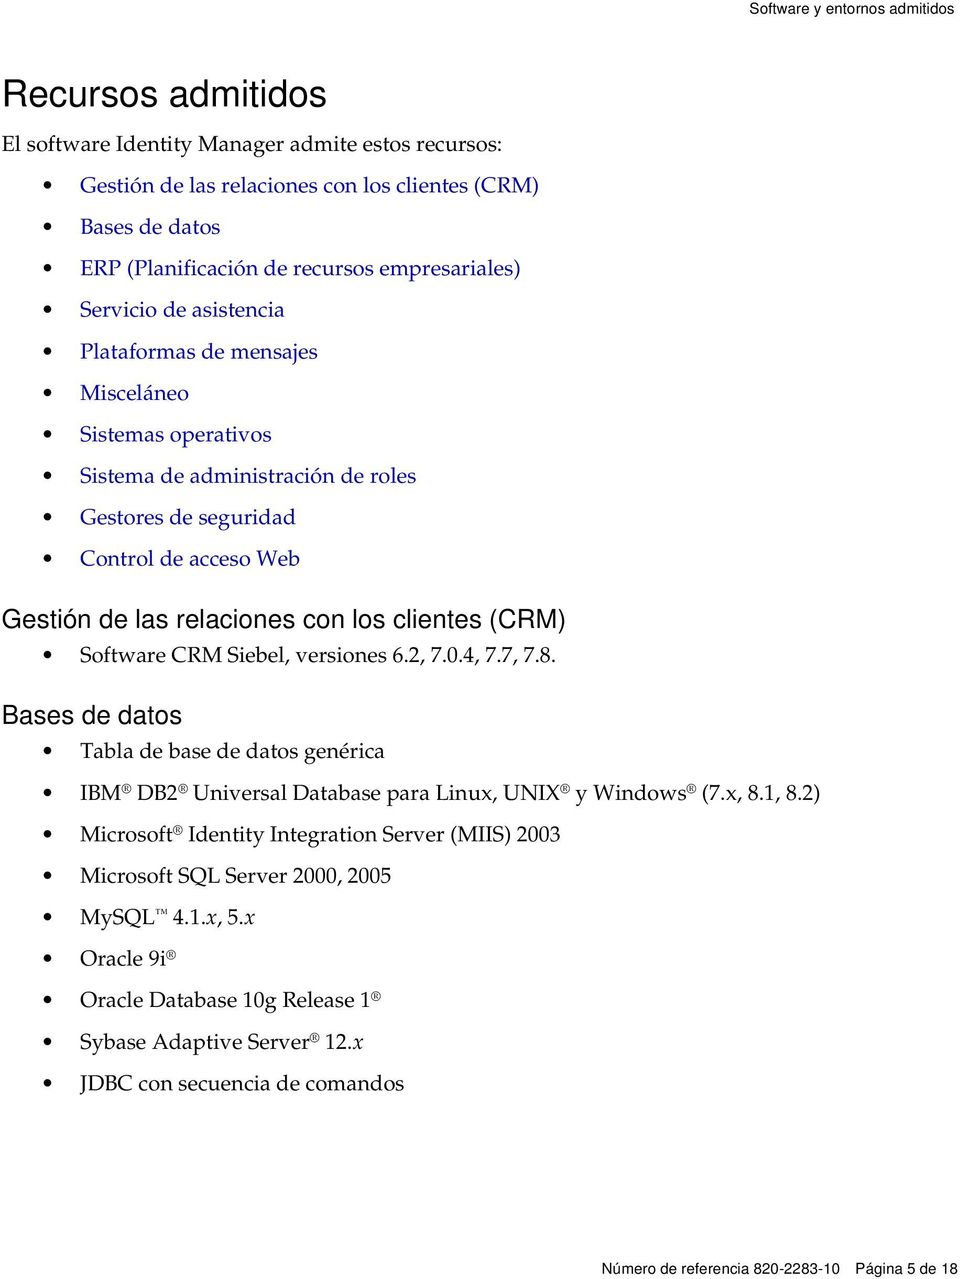 con los clientes (CRM) Software CRM Siebel, versiones 6.2, 7.0.4, 7.7, 7.8. Bases de datos Tabla de base de datos genérica IBM DB2 Universal Database para Linux, UNIX y Windows (7.x, 8.1, 8.